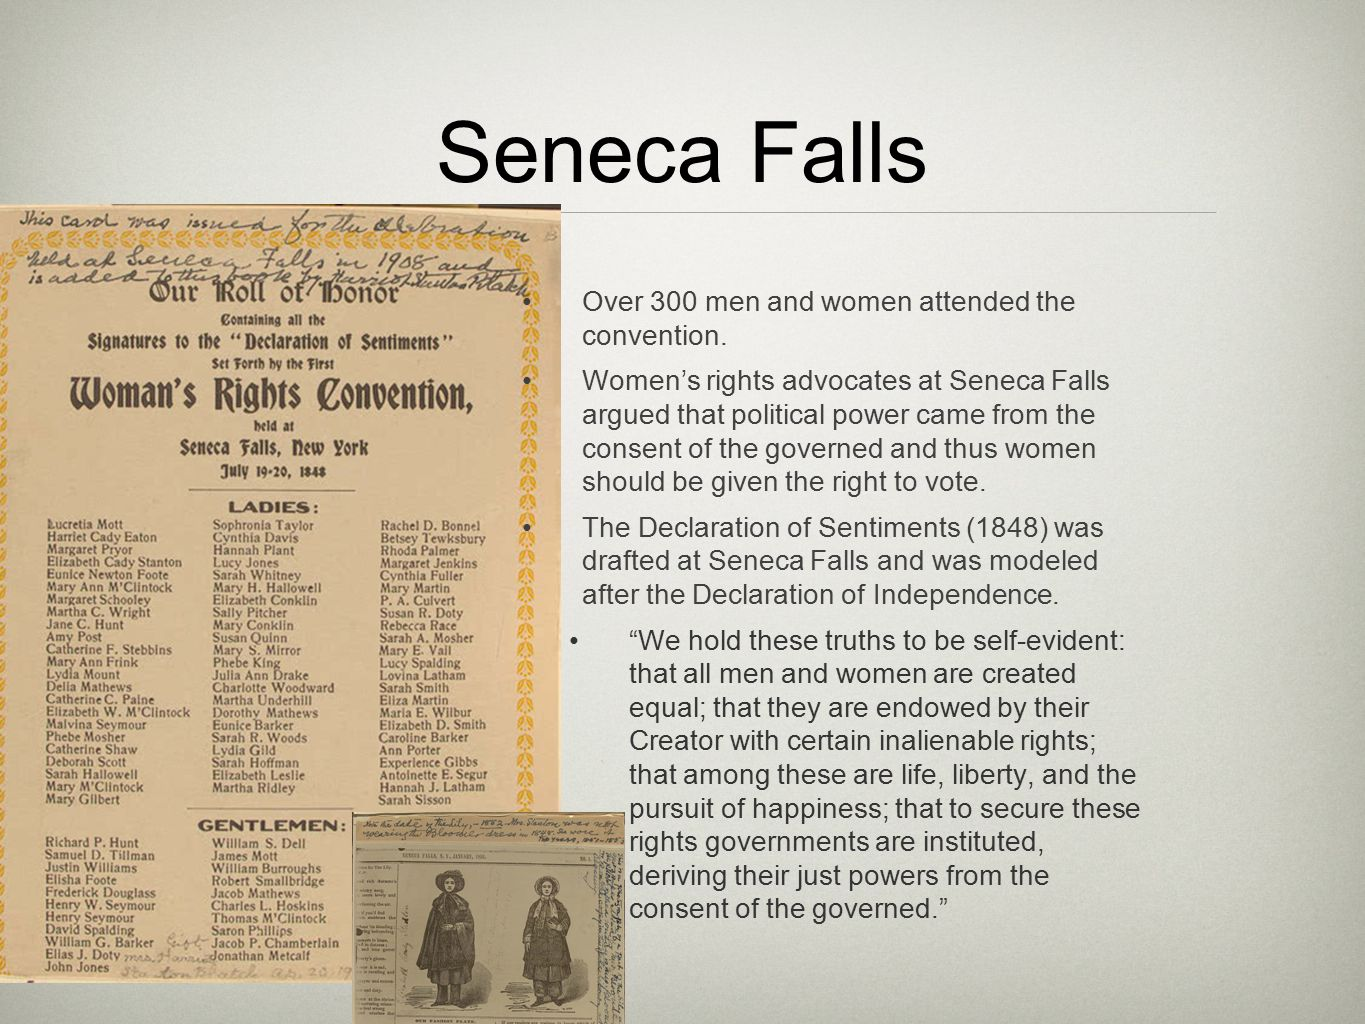 seneca falls declaration 1848 Seneca falls declaration of sentiments the feminist political movement began in the nineteenth century with the call for female suffrage at a convention in seneca falls, new york, in july 1848, a group of 240 people (200 women and 40 men) drafted and approved the declaration of sentiments.